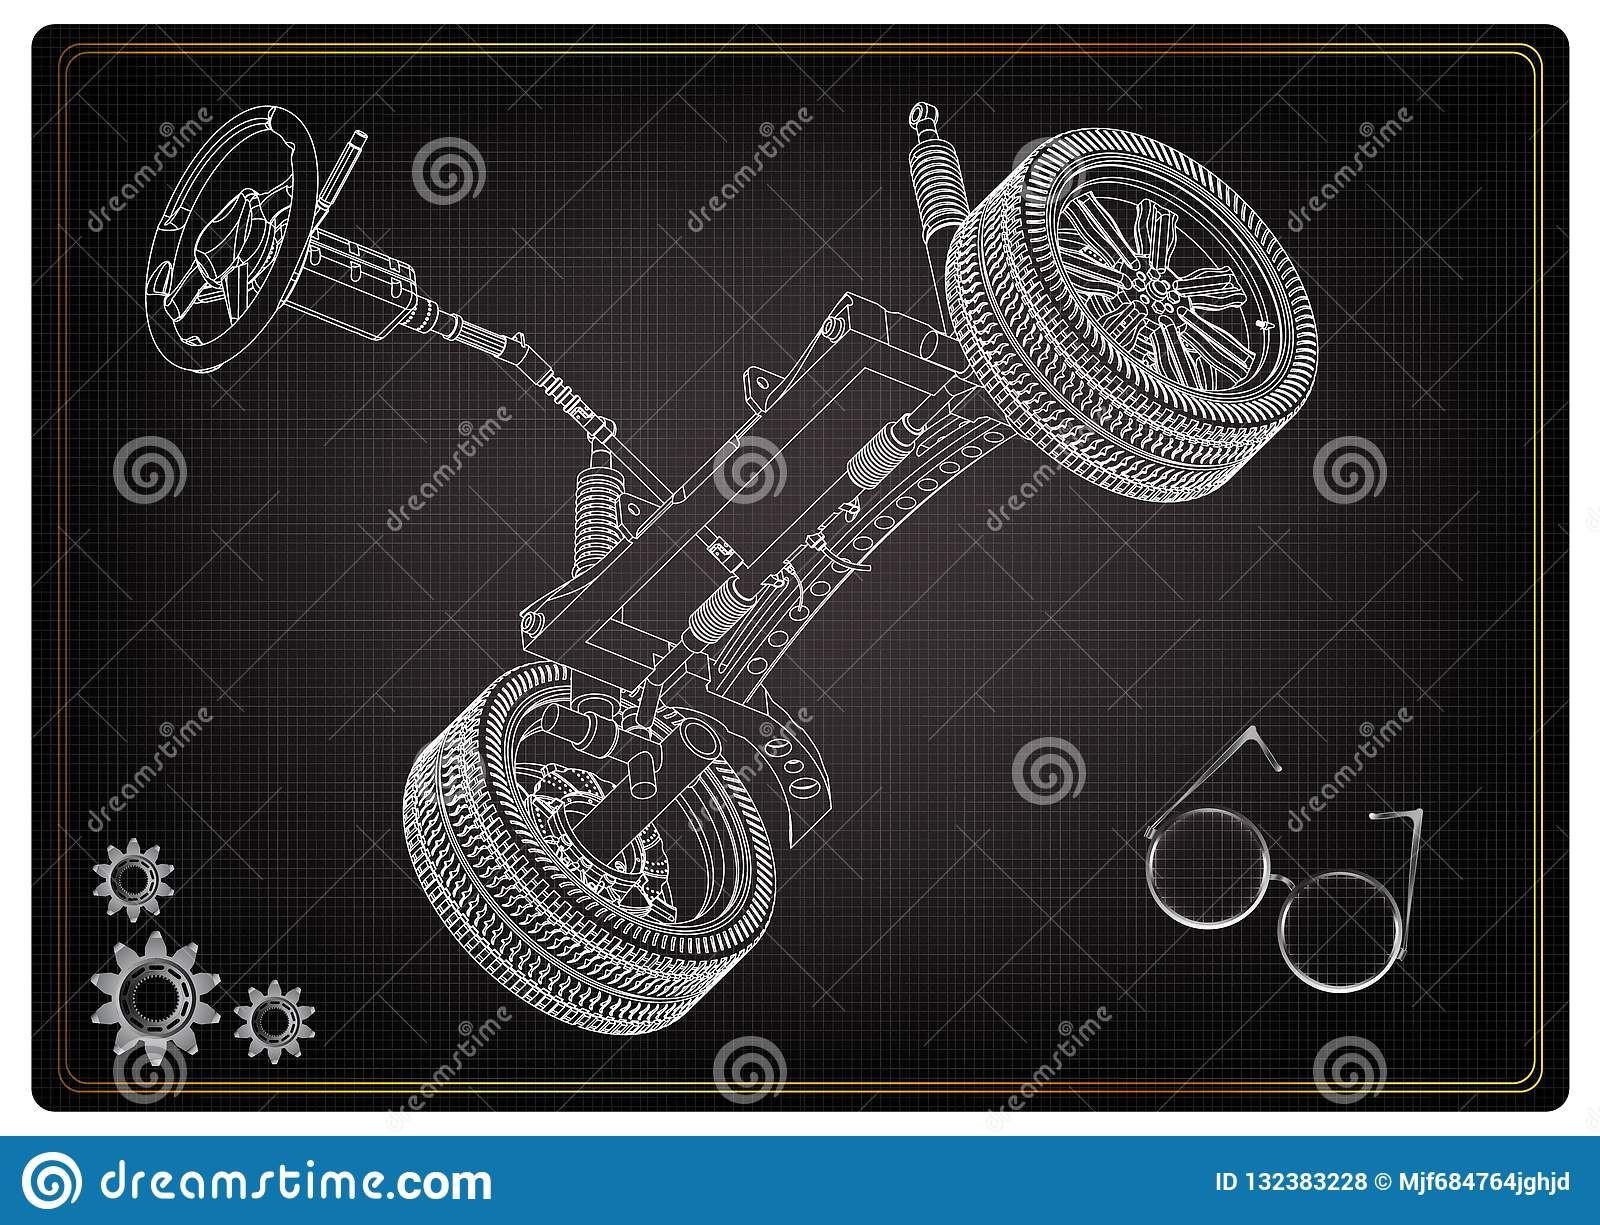 hight resolution of 3d model of steering column and car suspension on black